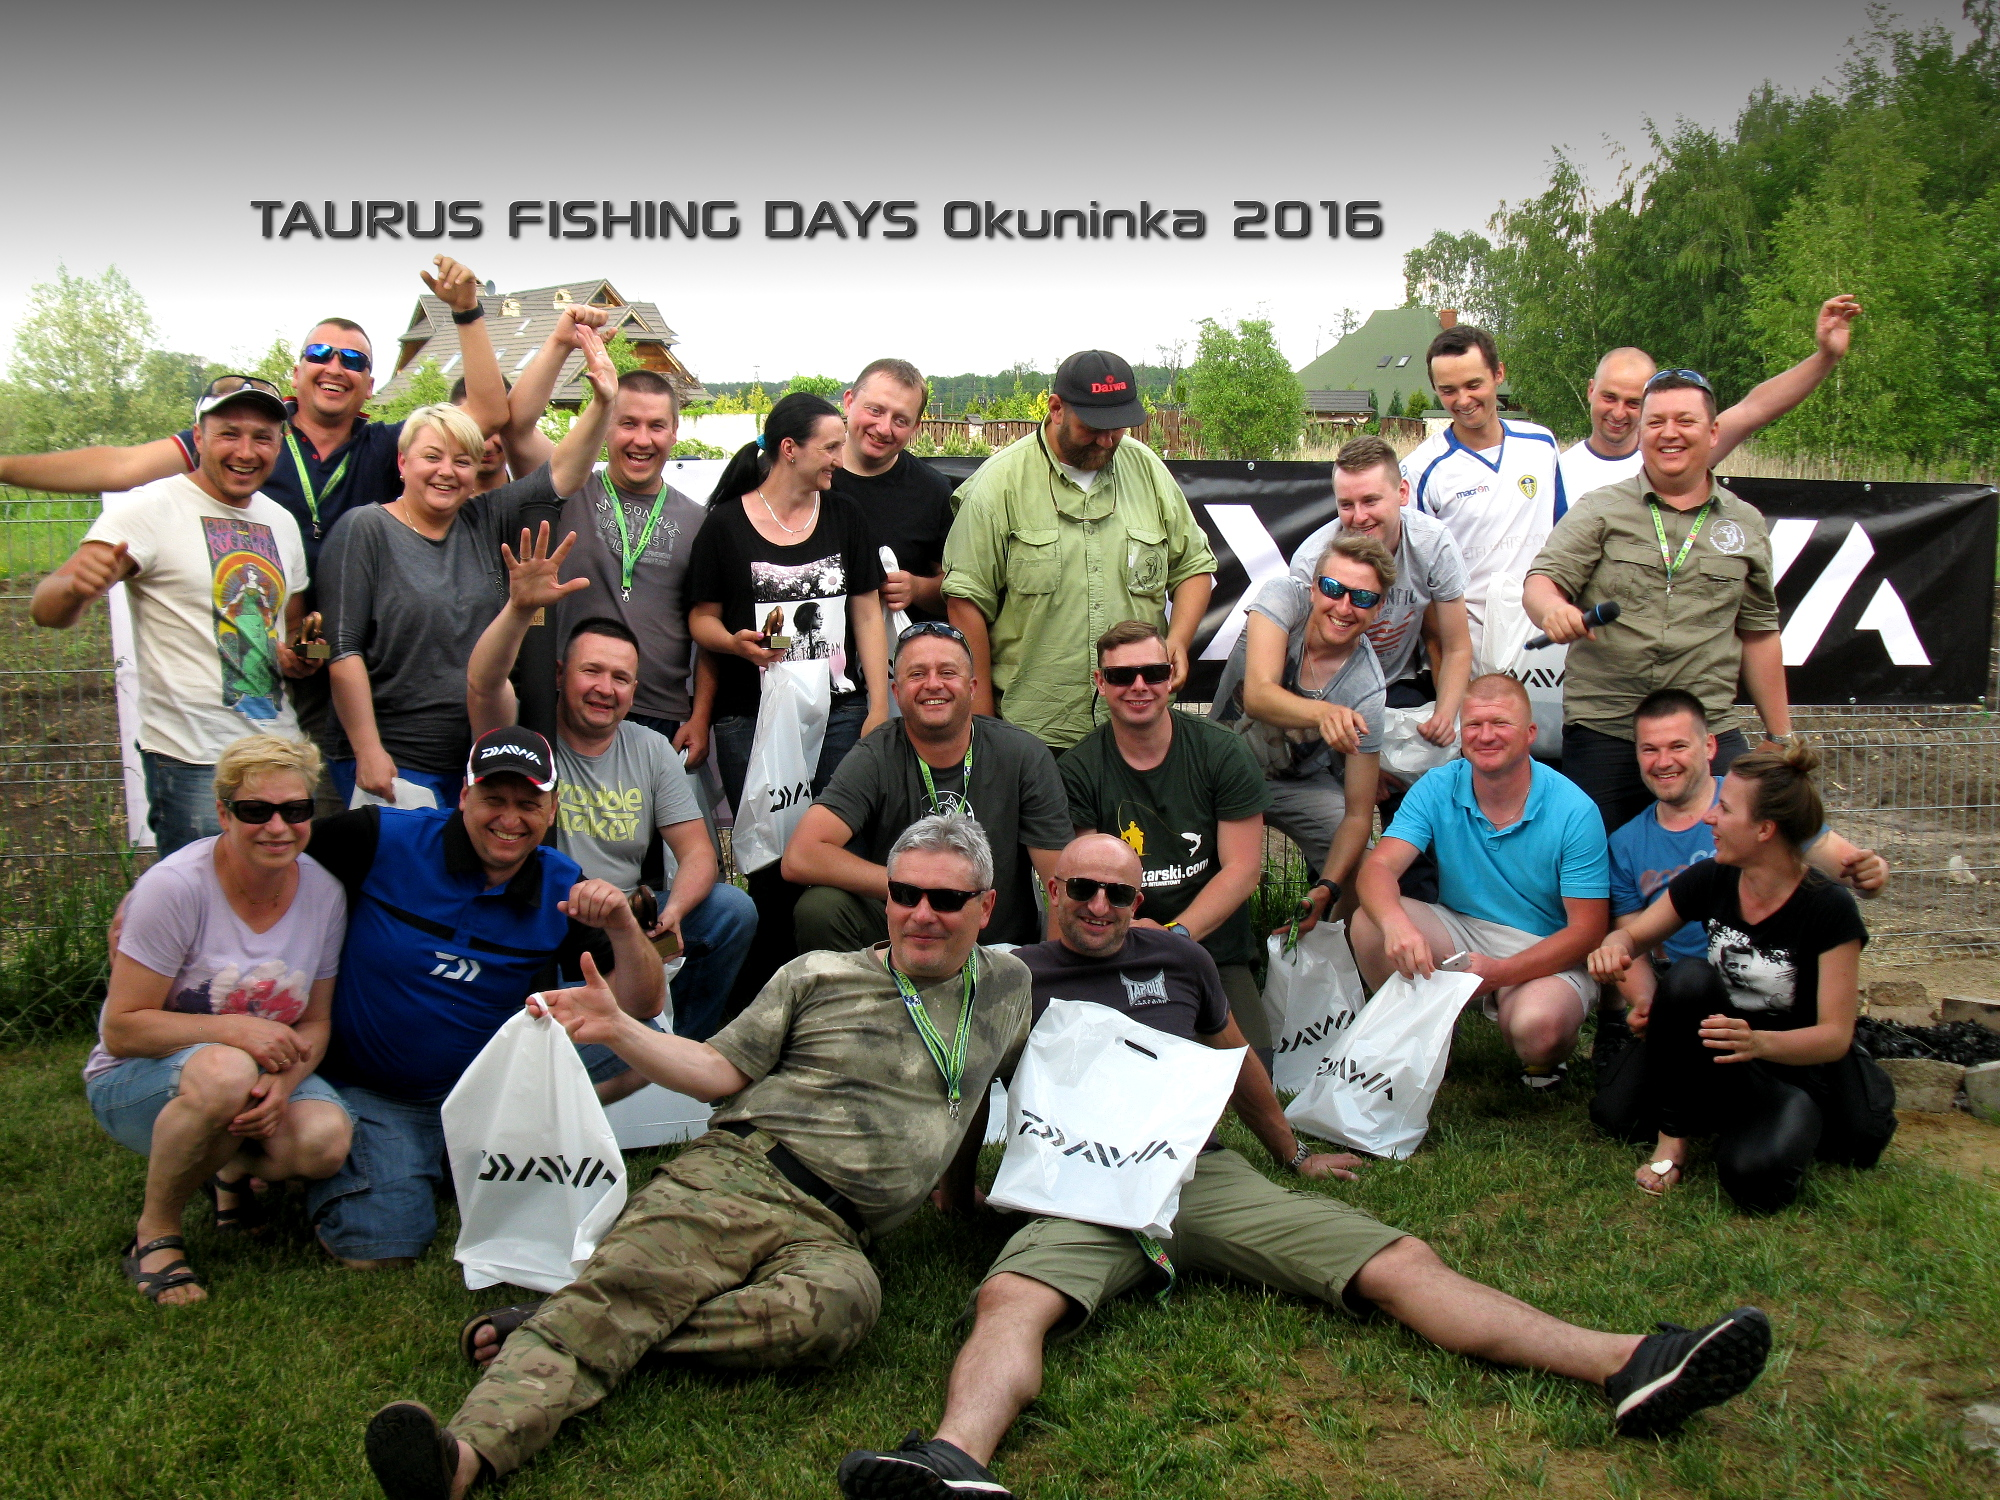 TAURUS FISHING DAYS 2016